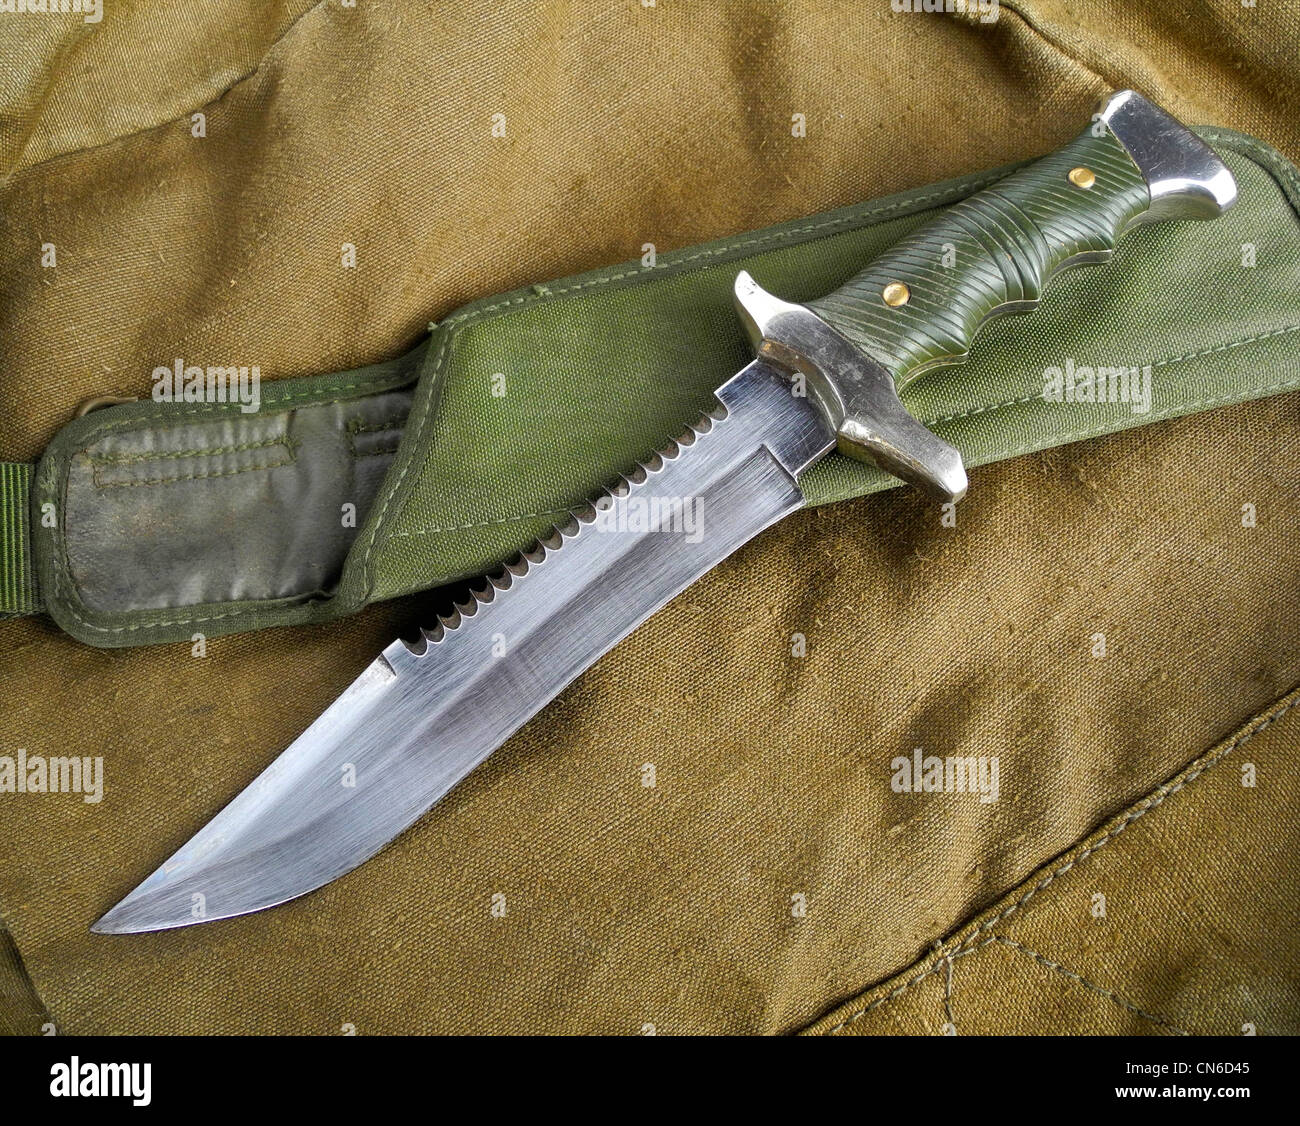 A combat military knife used as a weapon in close combat. - Stock Image